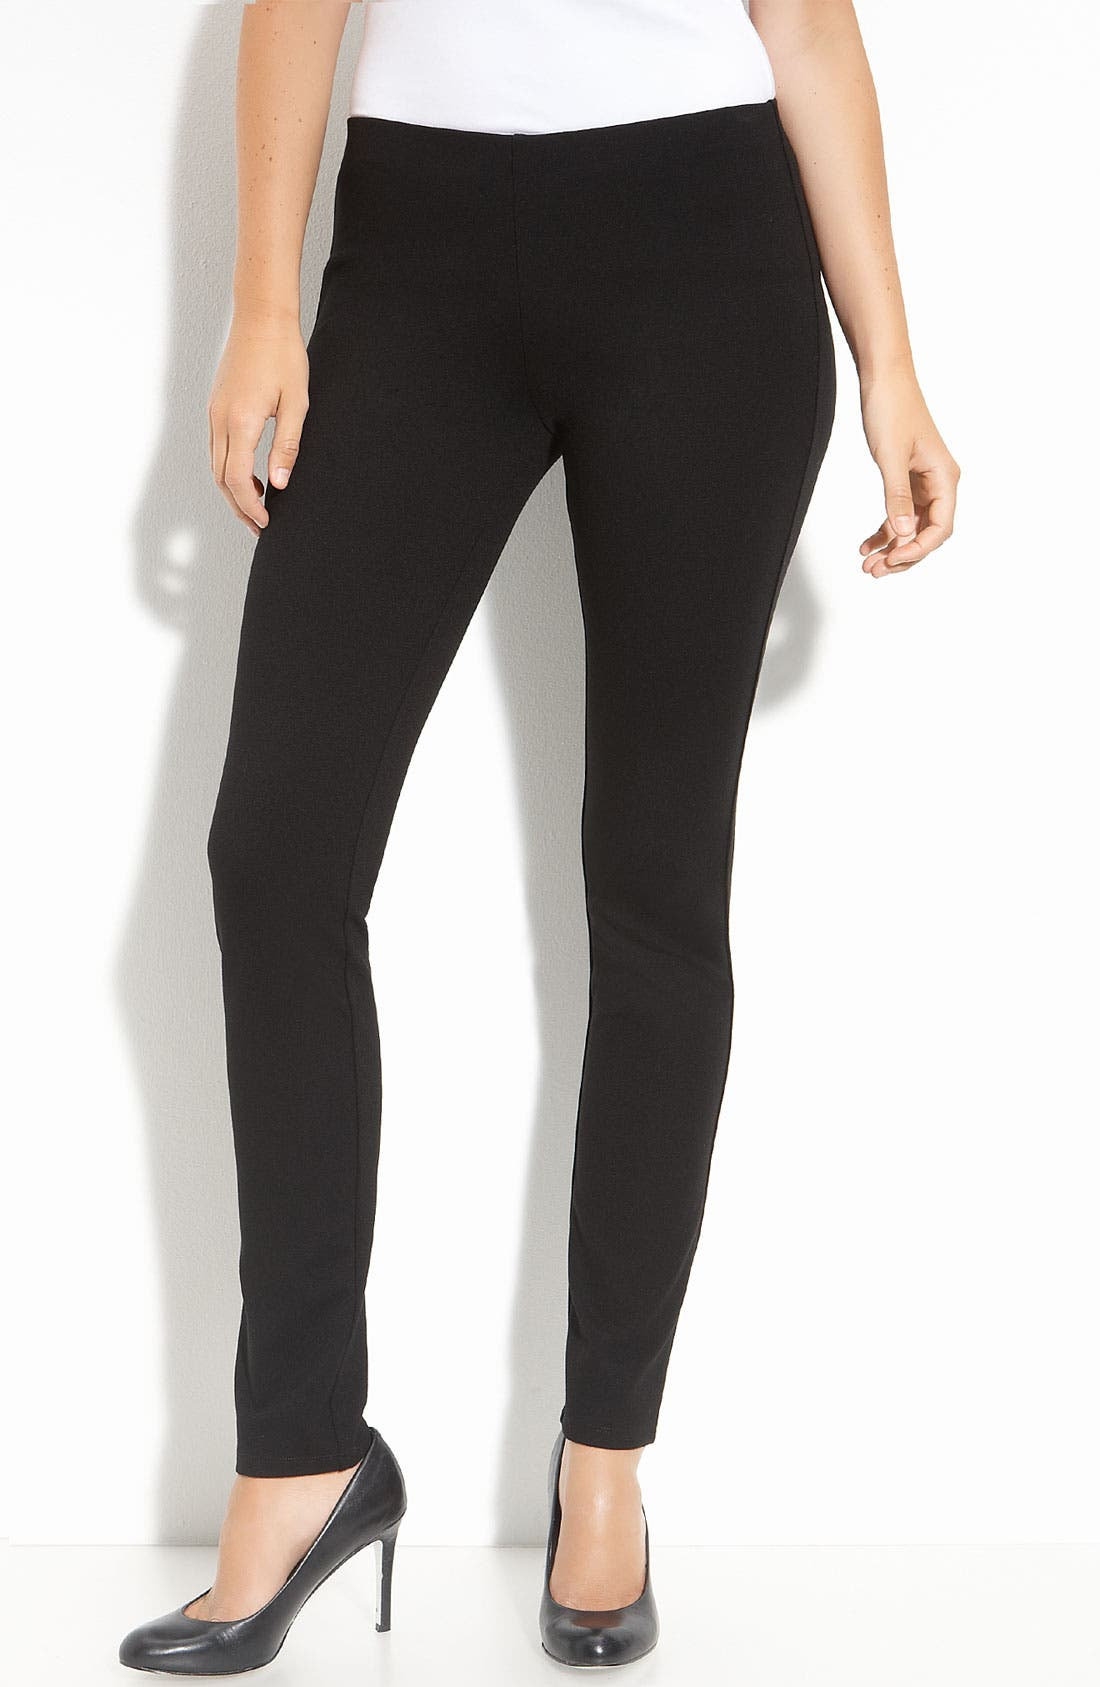 Alternate Image 1 Selected - Eileen Fisher Slim Ponte Knit Pants (Regular & Petite)